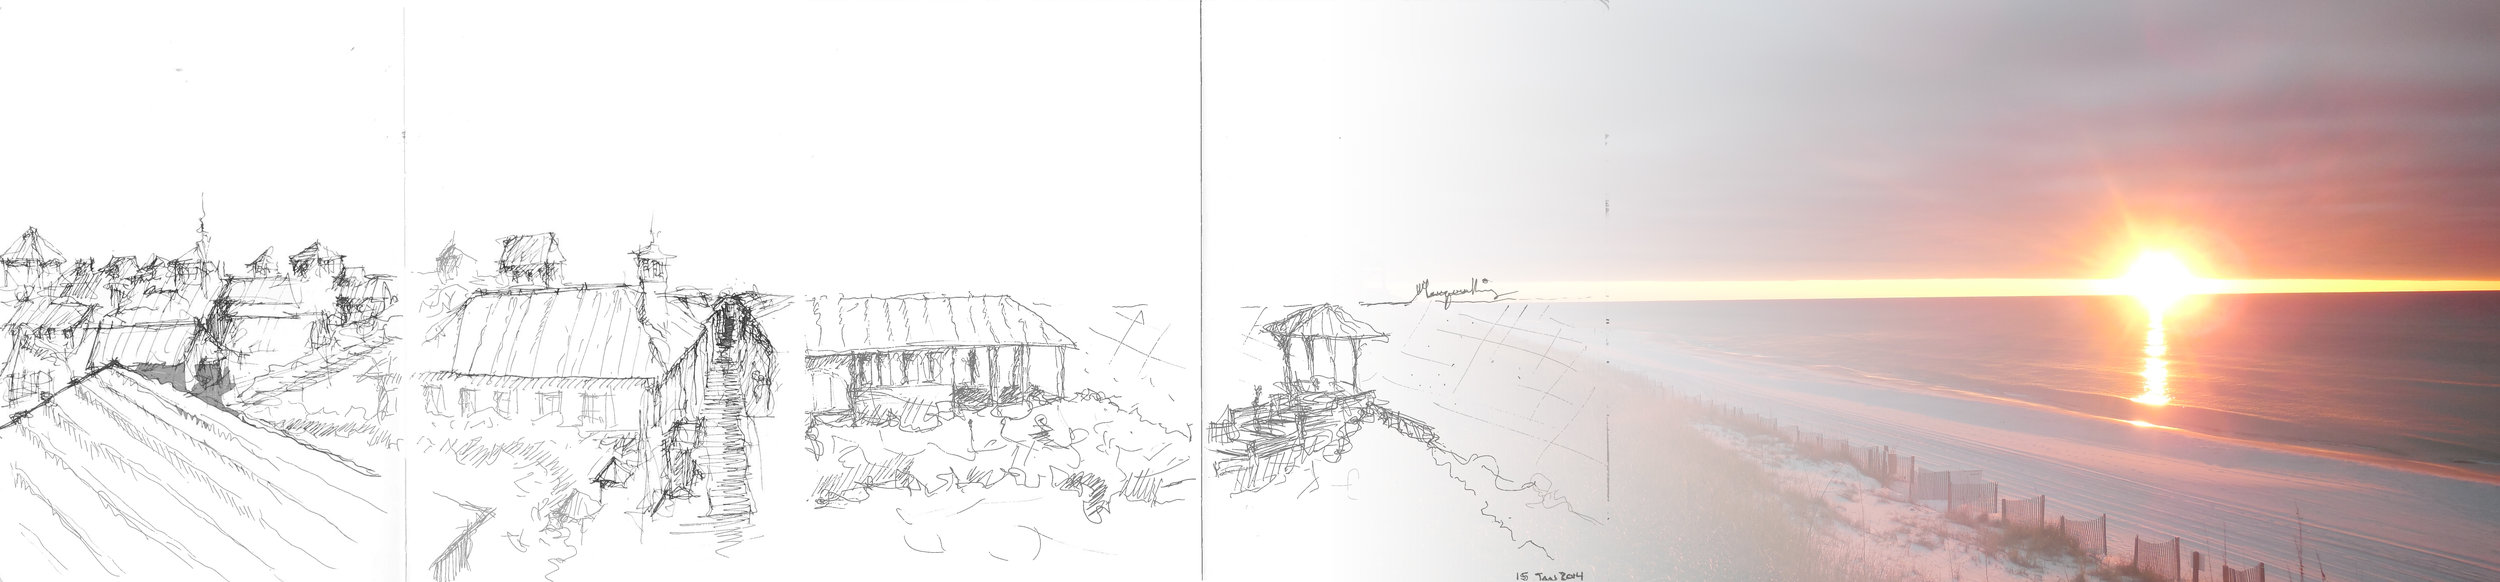 A sketch of the rooftops in Seaside, Flordia merged with a photograph of the sun setting over the Gulf of Mexico horizon. It is an accurate depiction of the sunset experiences afforded to residents and visitors of Seaside because of good design vision by the town's architects and urban designers. (Sketch by Marques King)